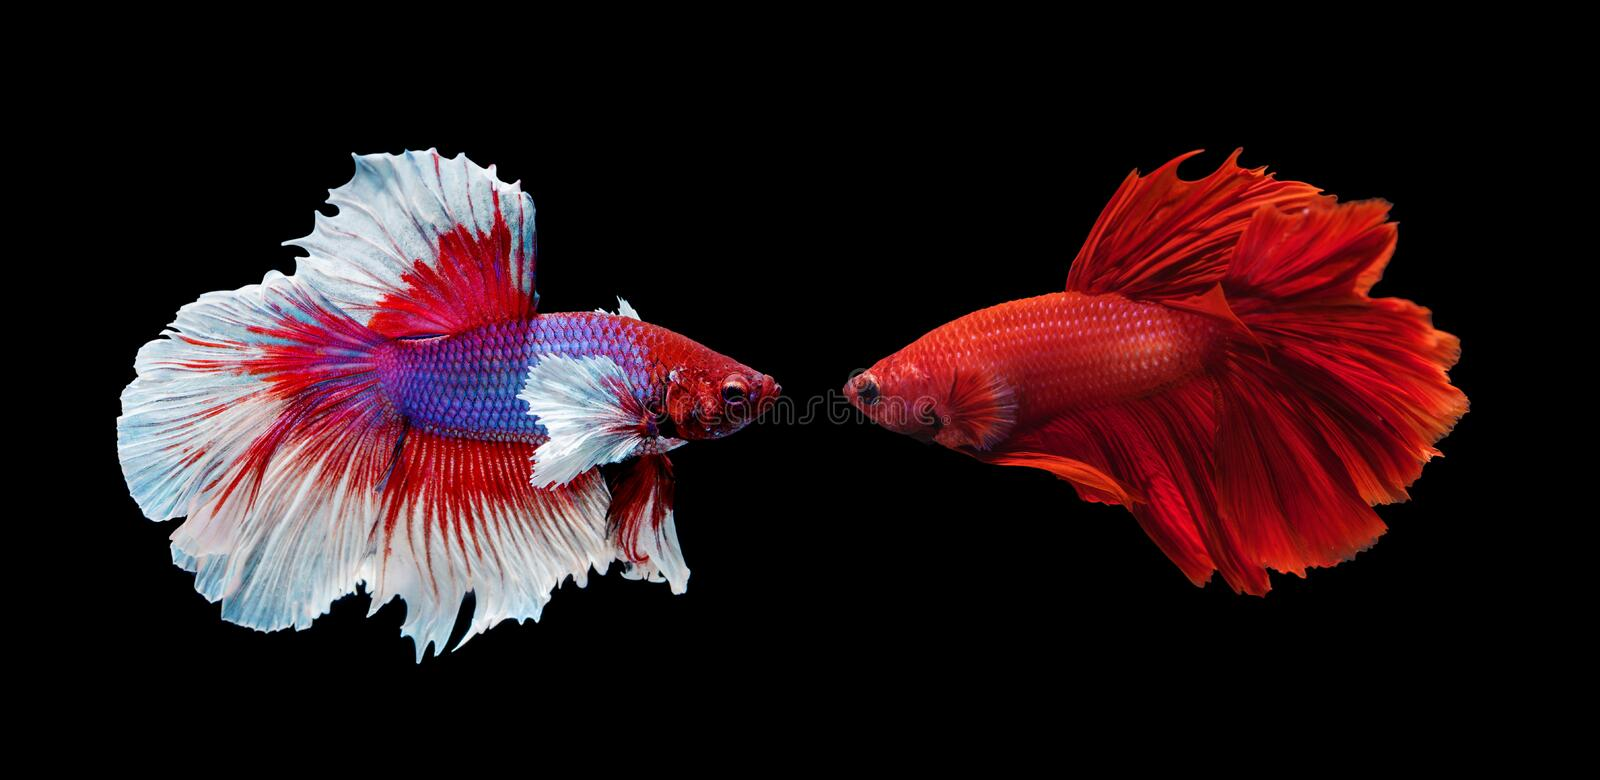 Two siamese fighting fish on black background royalty free stock photo